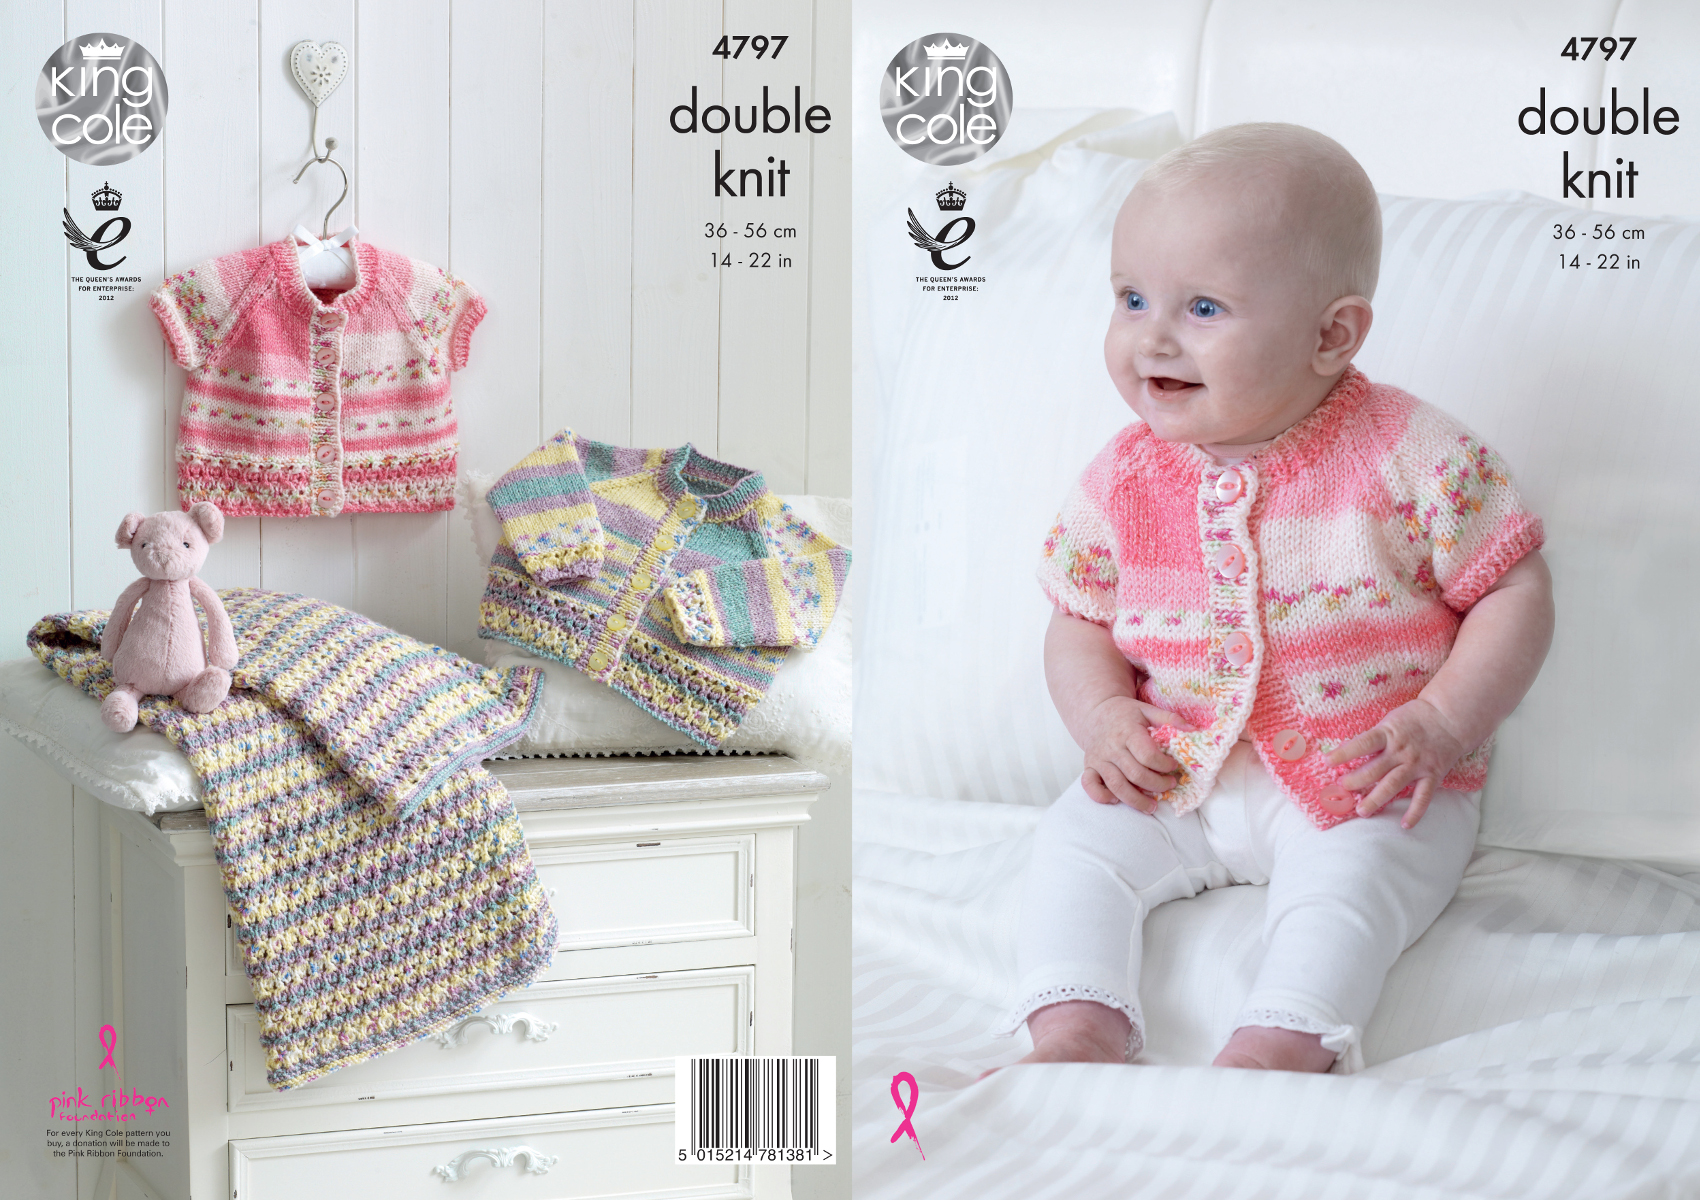 King Cole Ladies Double Knitting Pattern Short or Long Sleeved Cardigan 4856